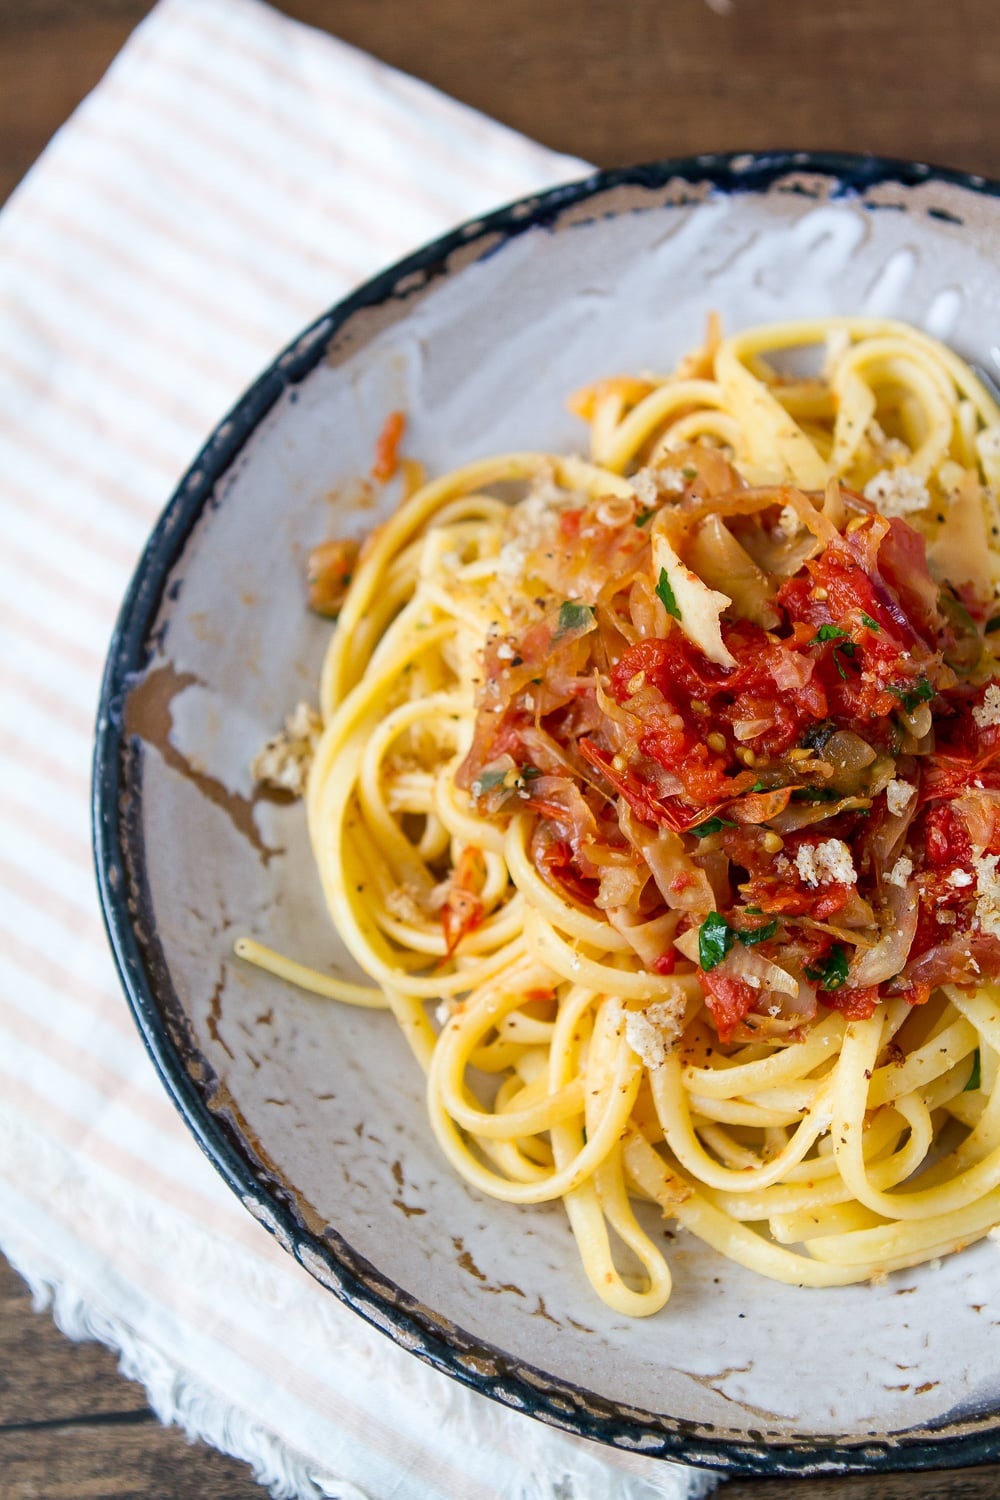 SPAGHETTI WITH OVEN ROASTED TOMATOES AND CARAMELIZED FENNEL